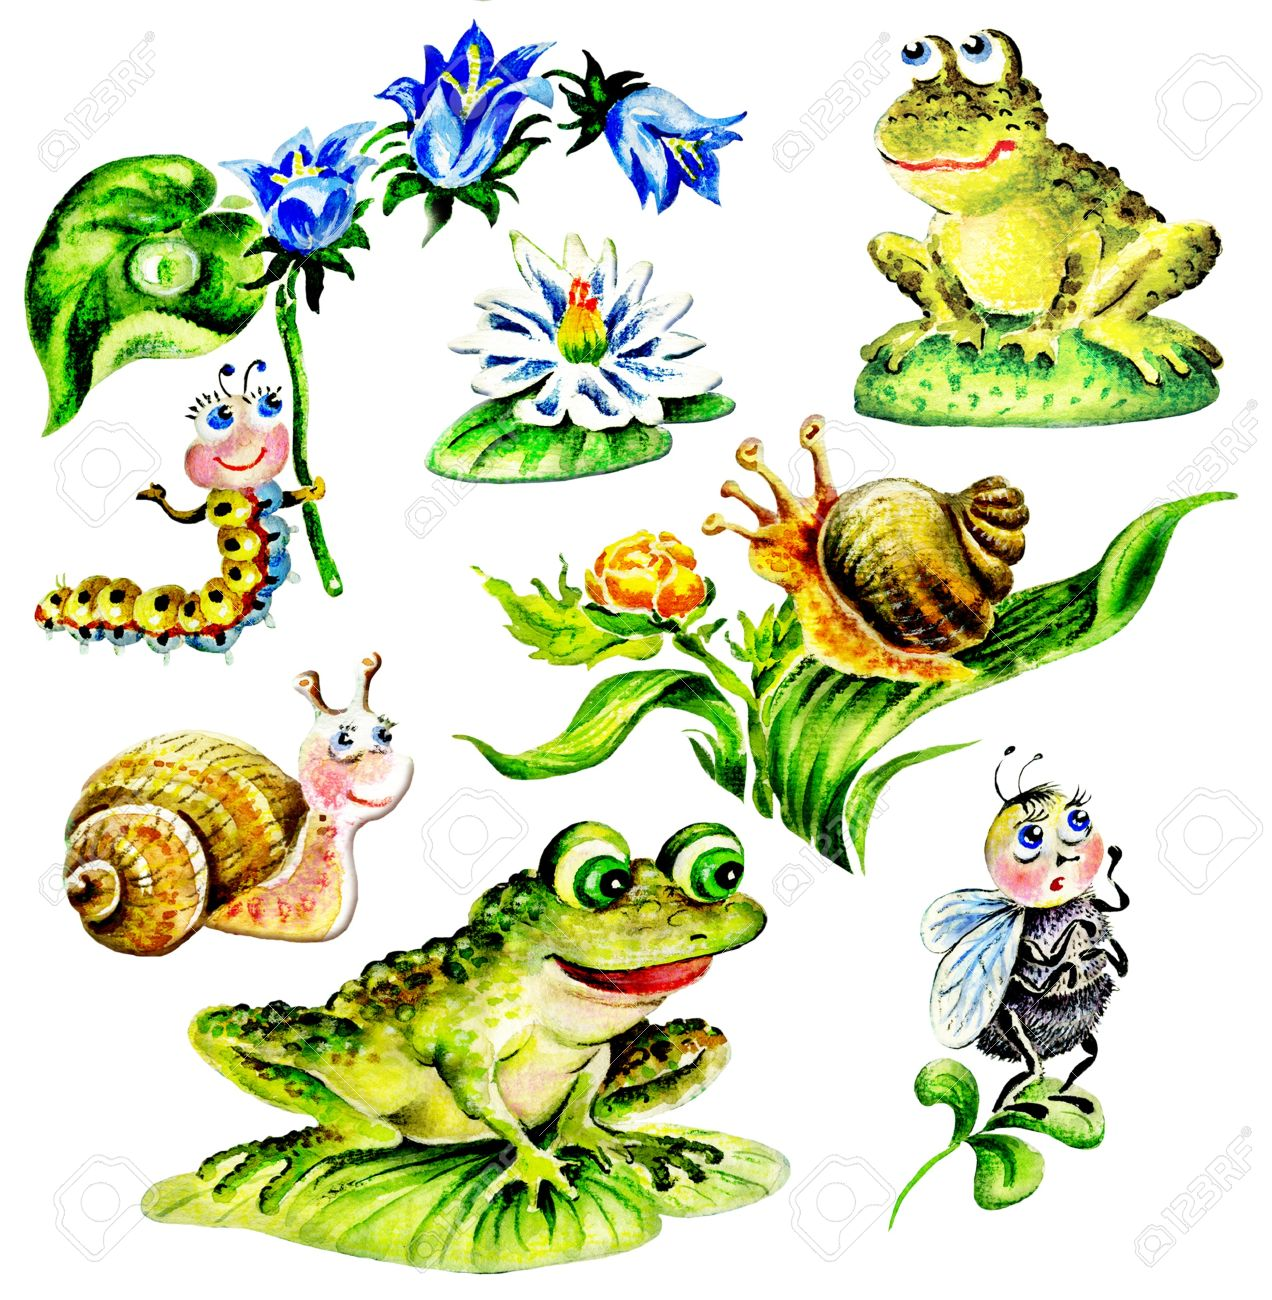 Snails, Frogs, Caterpillar With Flower, Fly, Water Lily. Set.